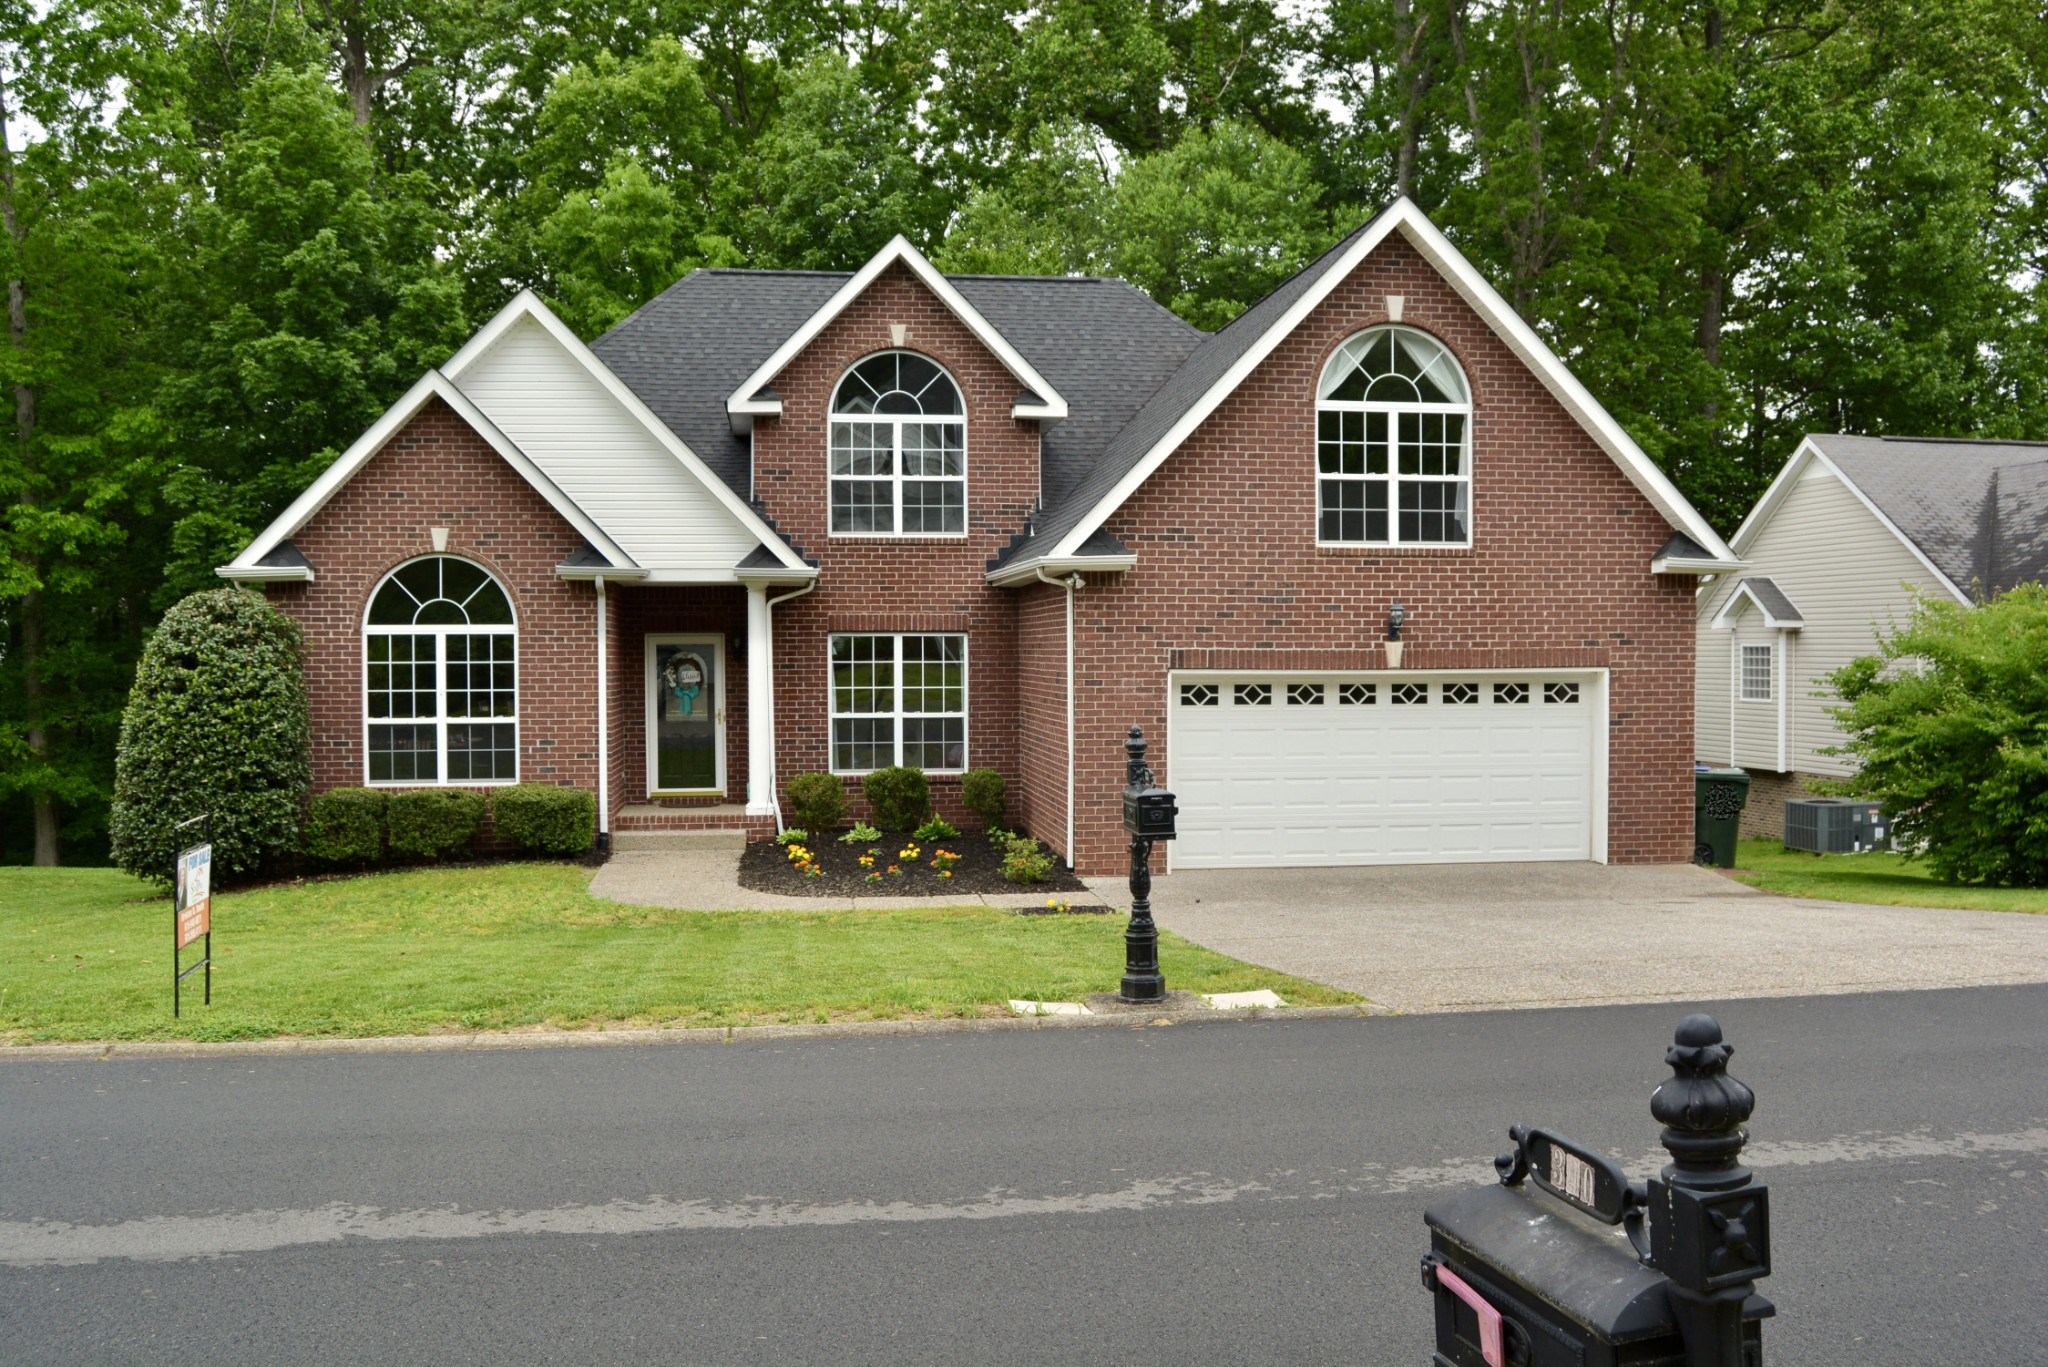 333 Holly Ln Property Photo - White House, TN real estate listing